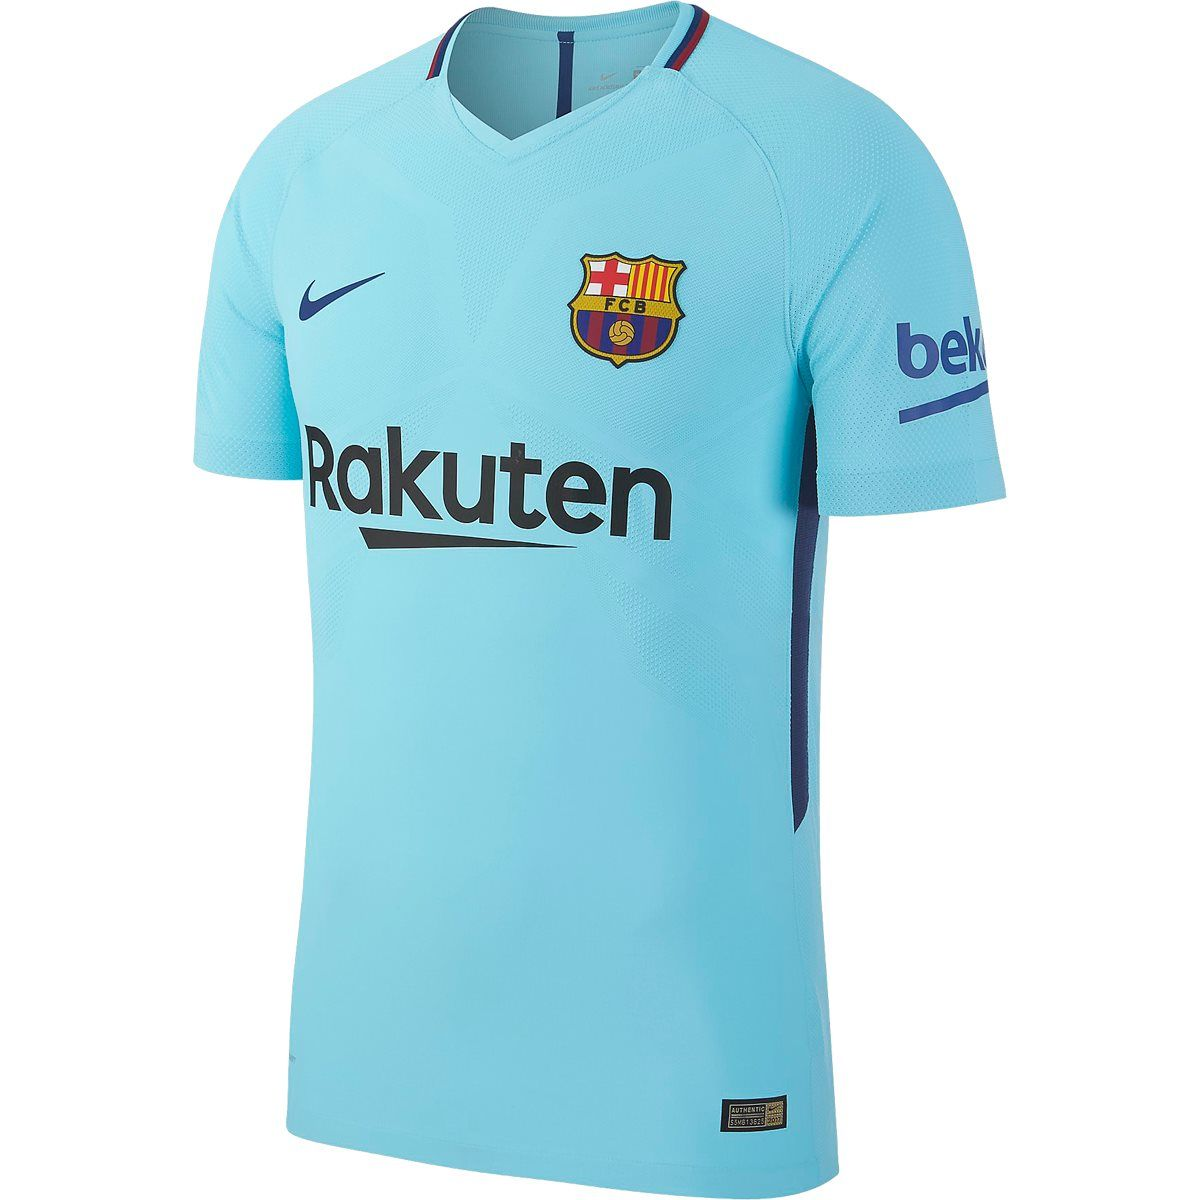 9f436b3b983 Nike Barcelona Away Jersey 2017 2018. Nike Barcelona Away Jersey 2017 2018 Cheap  Football Shirts ...